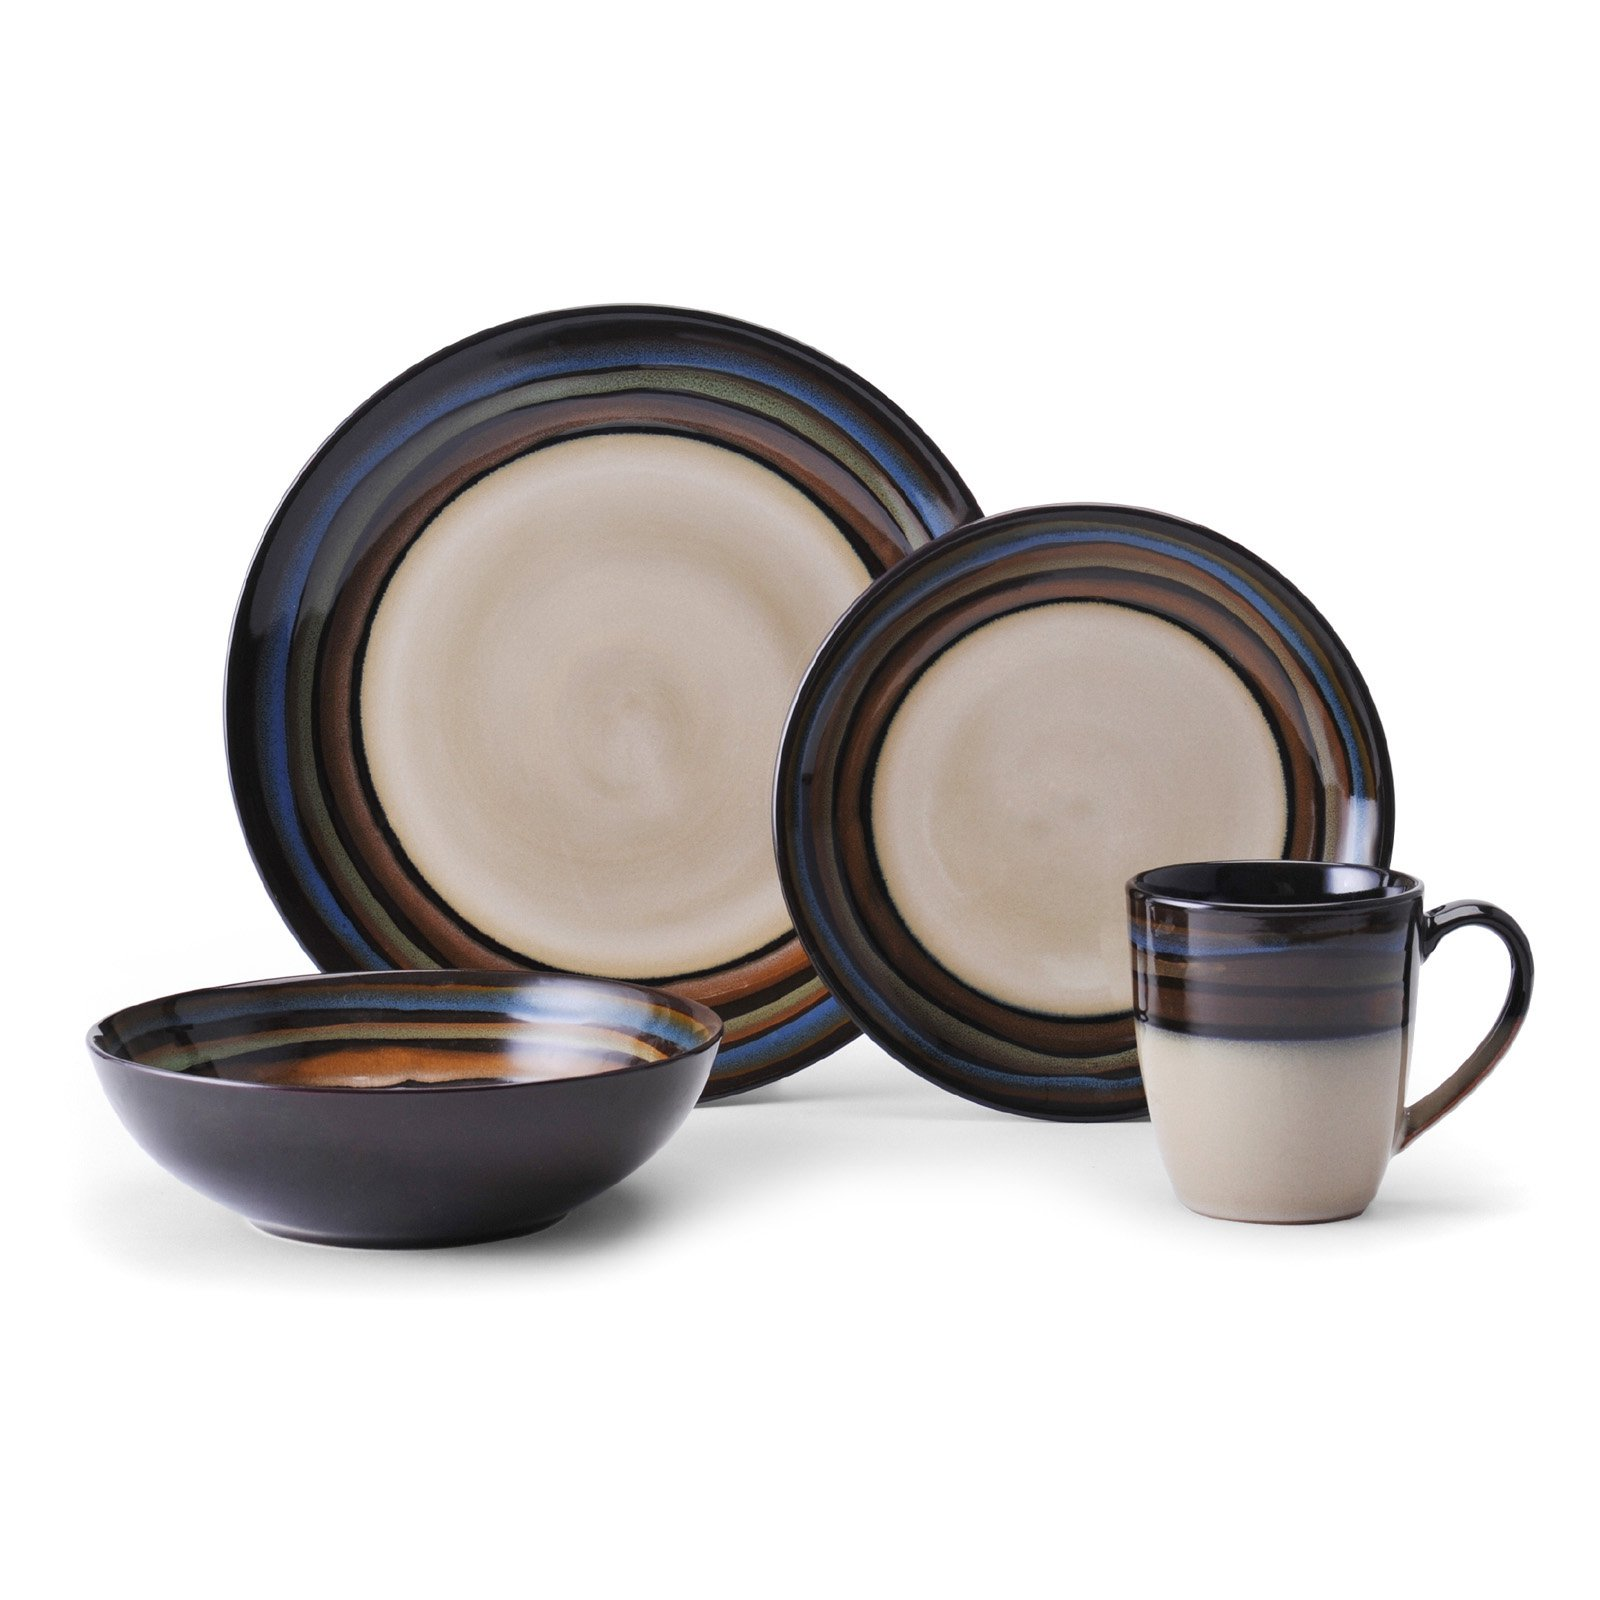 sc 1 st  Walmart : 16 piece dinnerware set cheap - pezcame.com